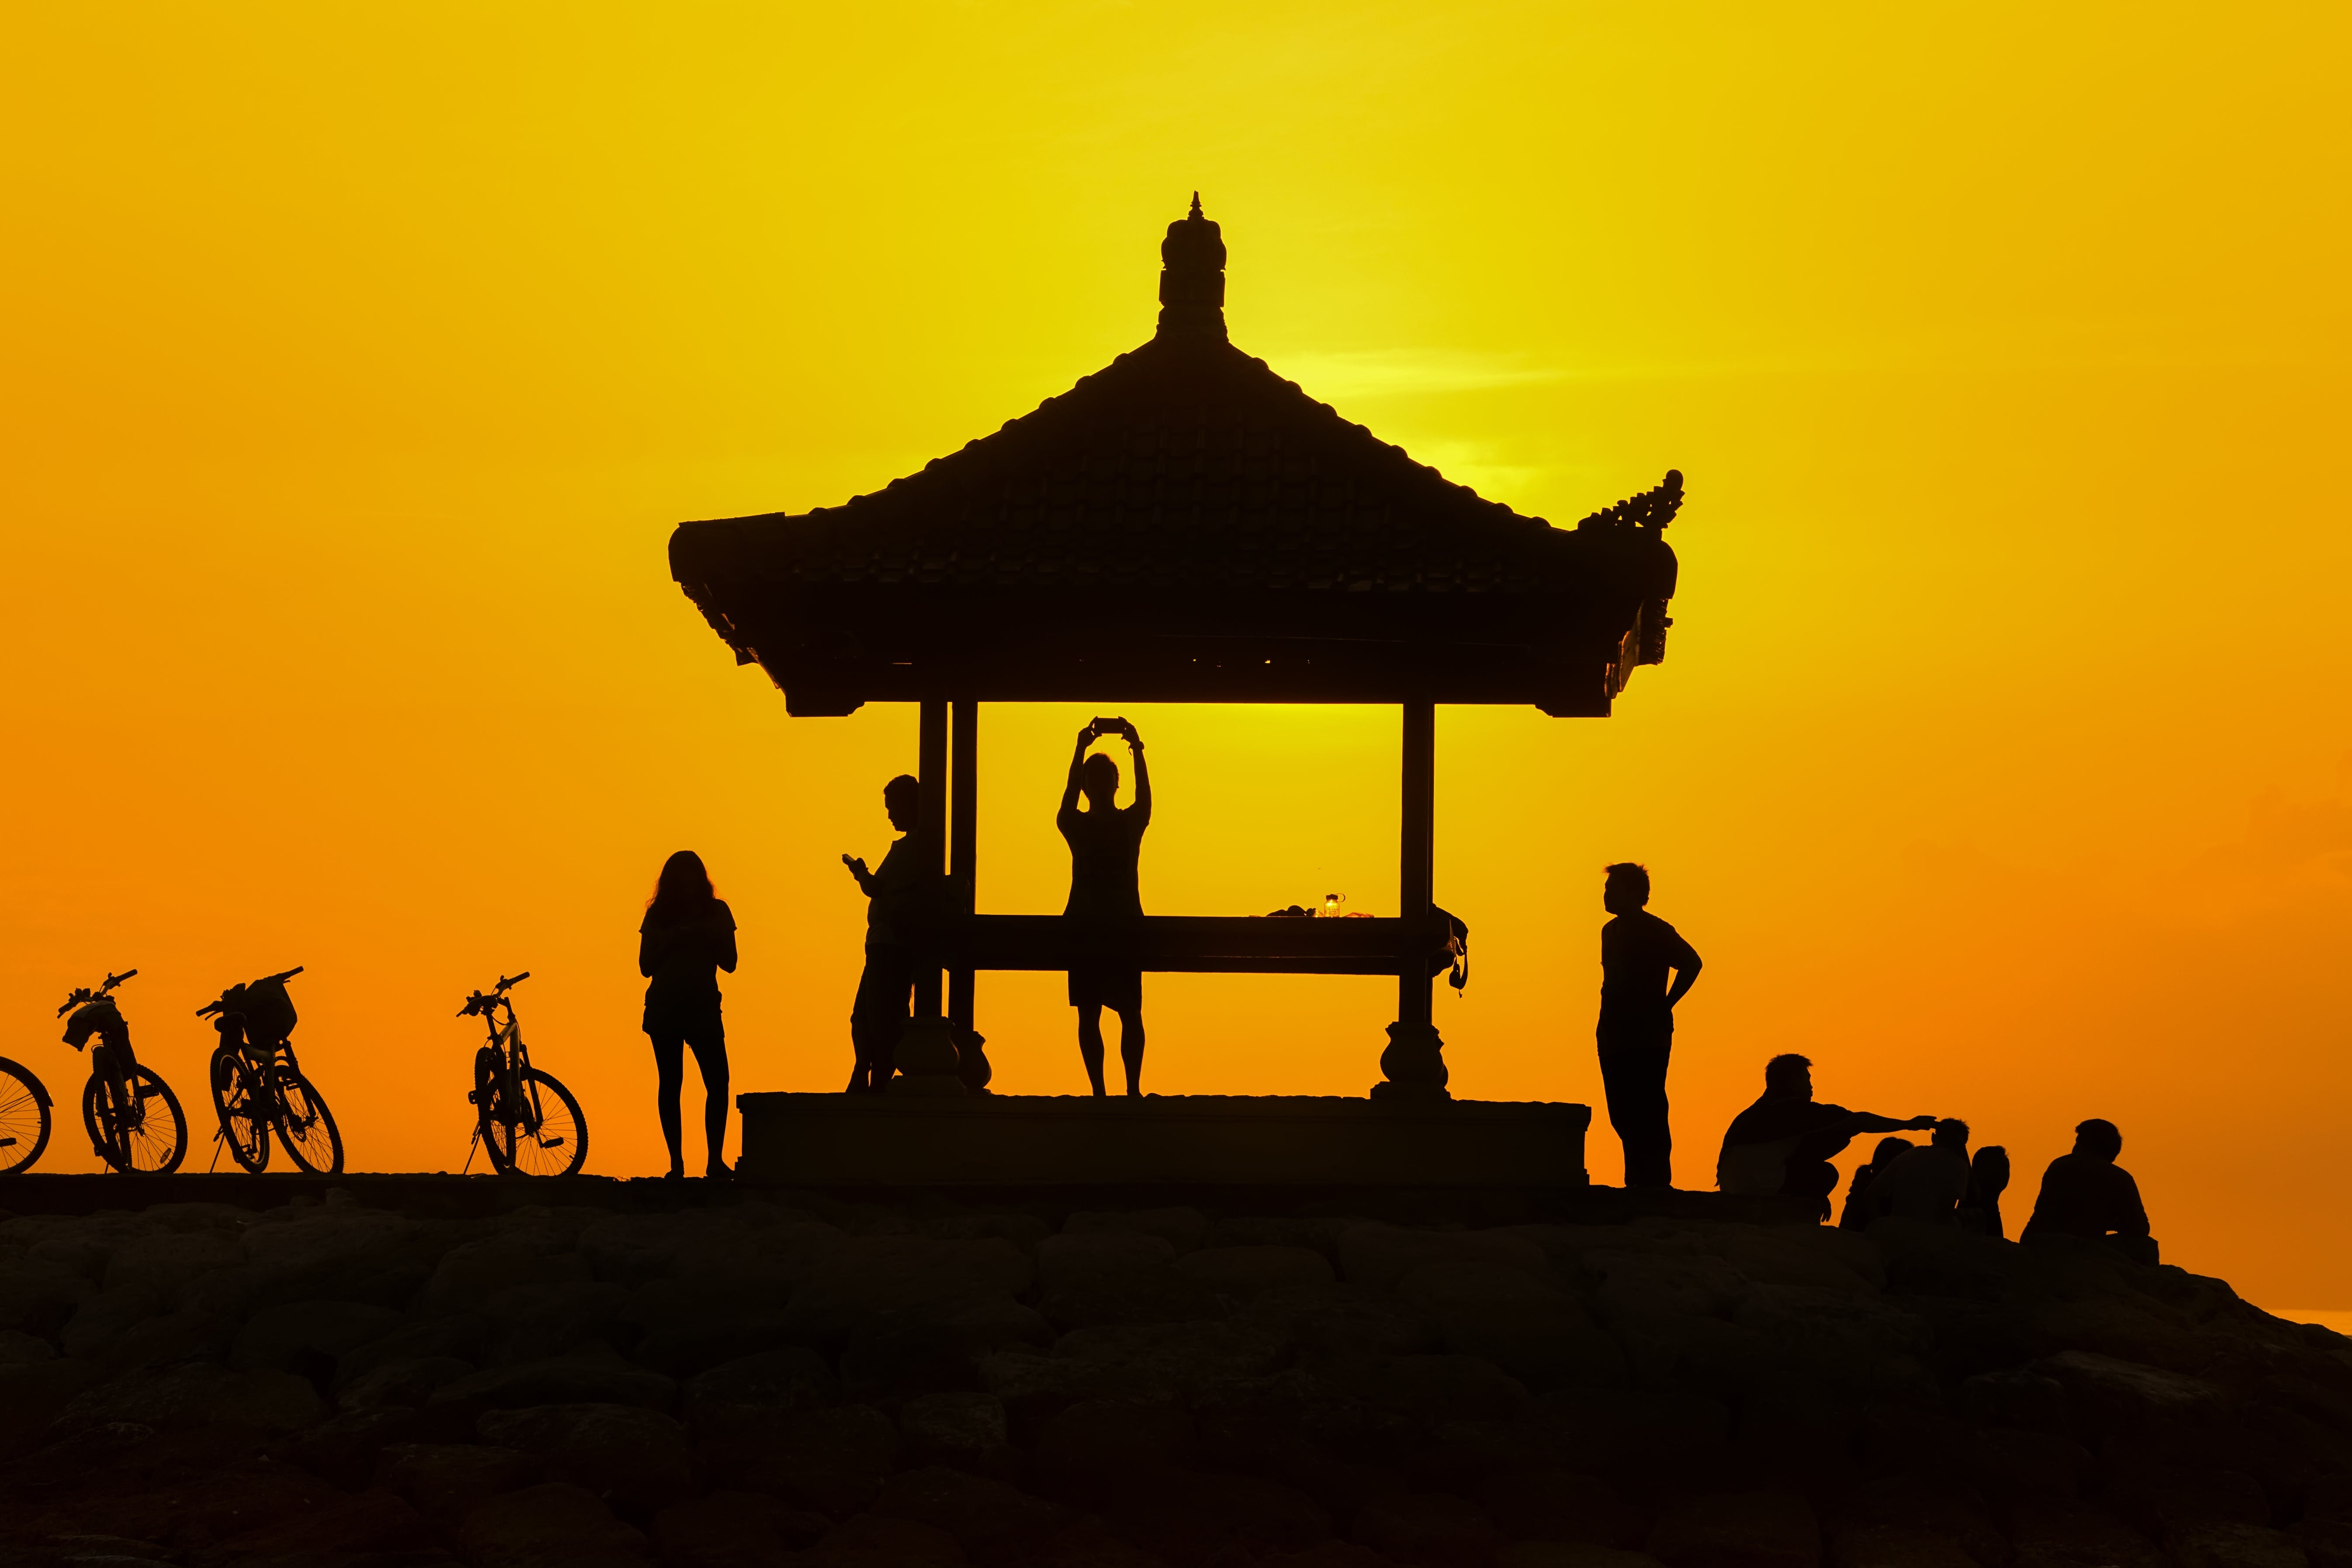 Silhouette of People Standing Near Gazebo